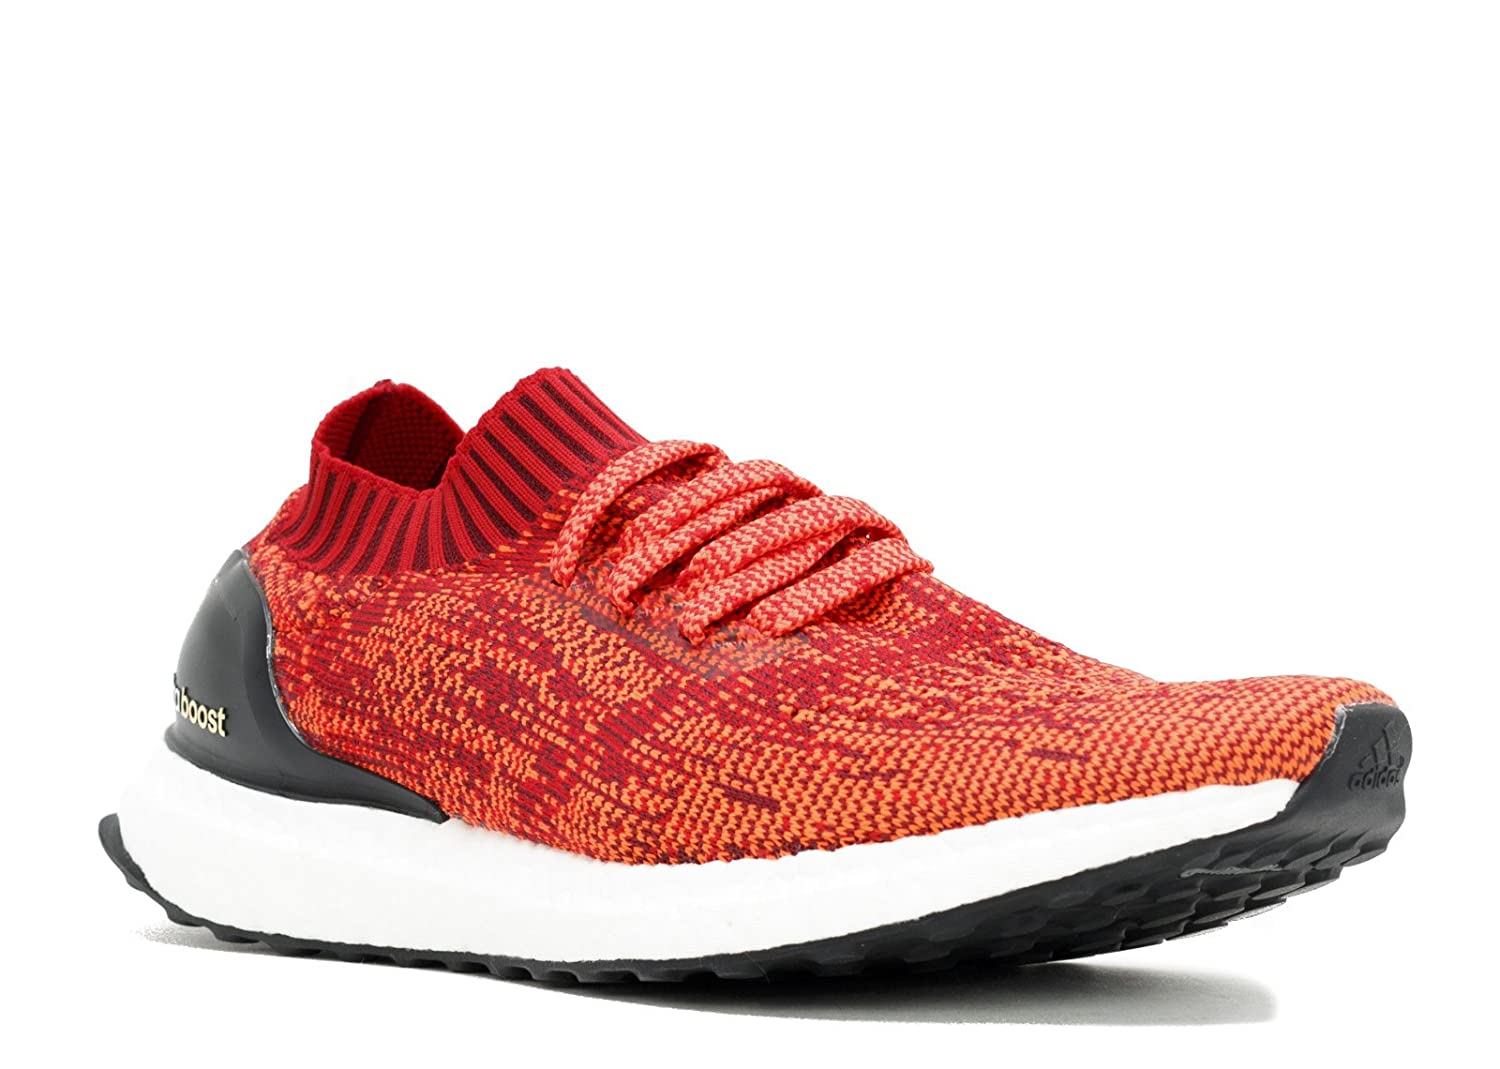 0202ab683161f adidas Ultra Boost Uncaged M - BB3899 - Size 6.5 -  Amazon.co.uk  Shoes    Bags